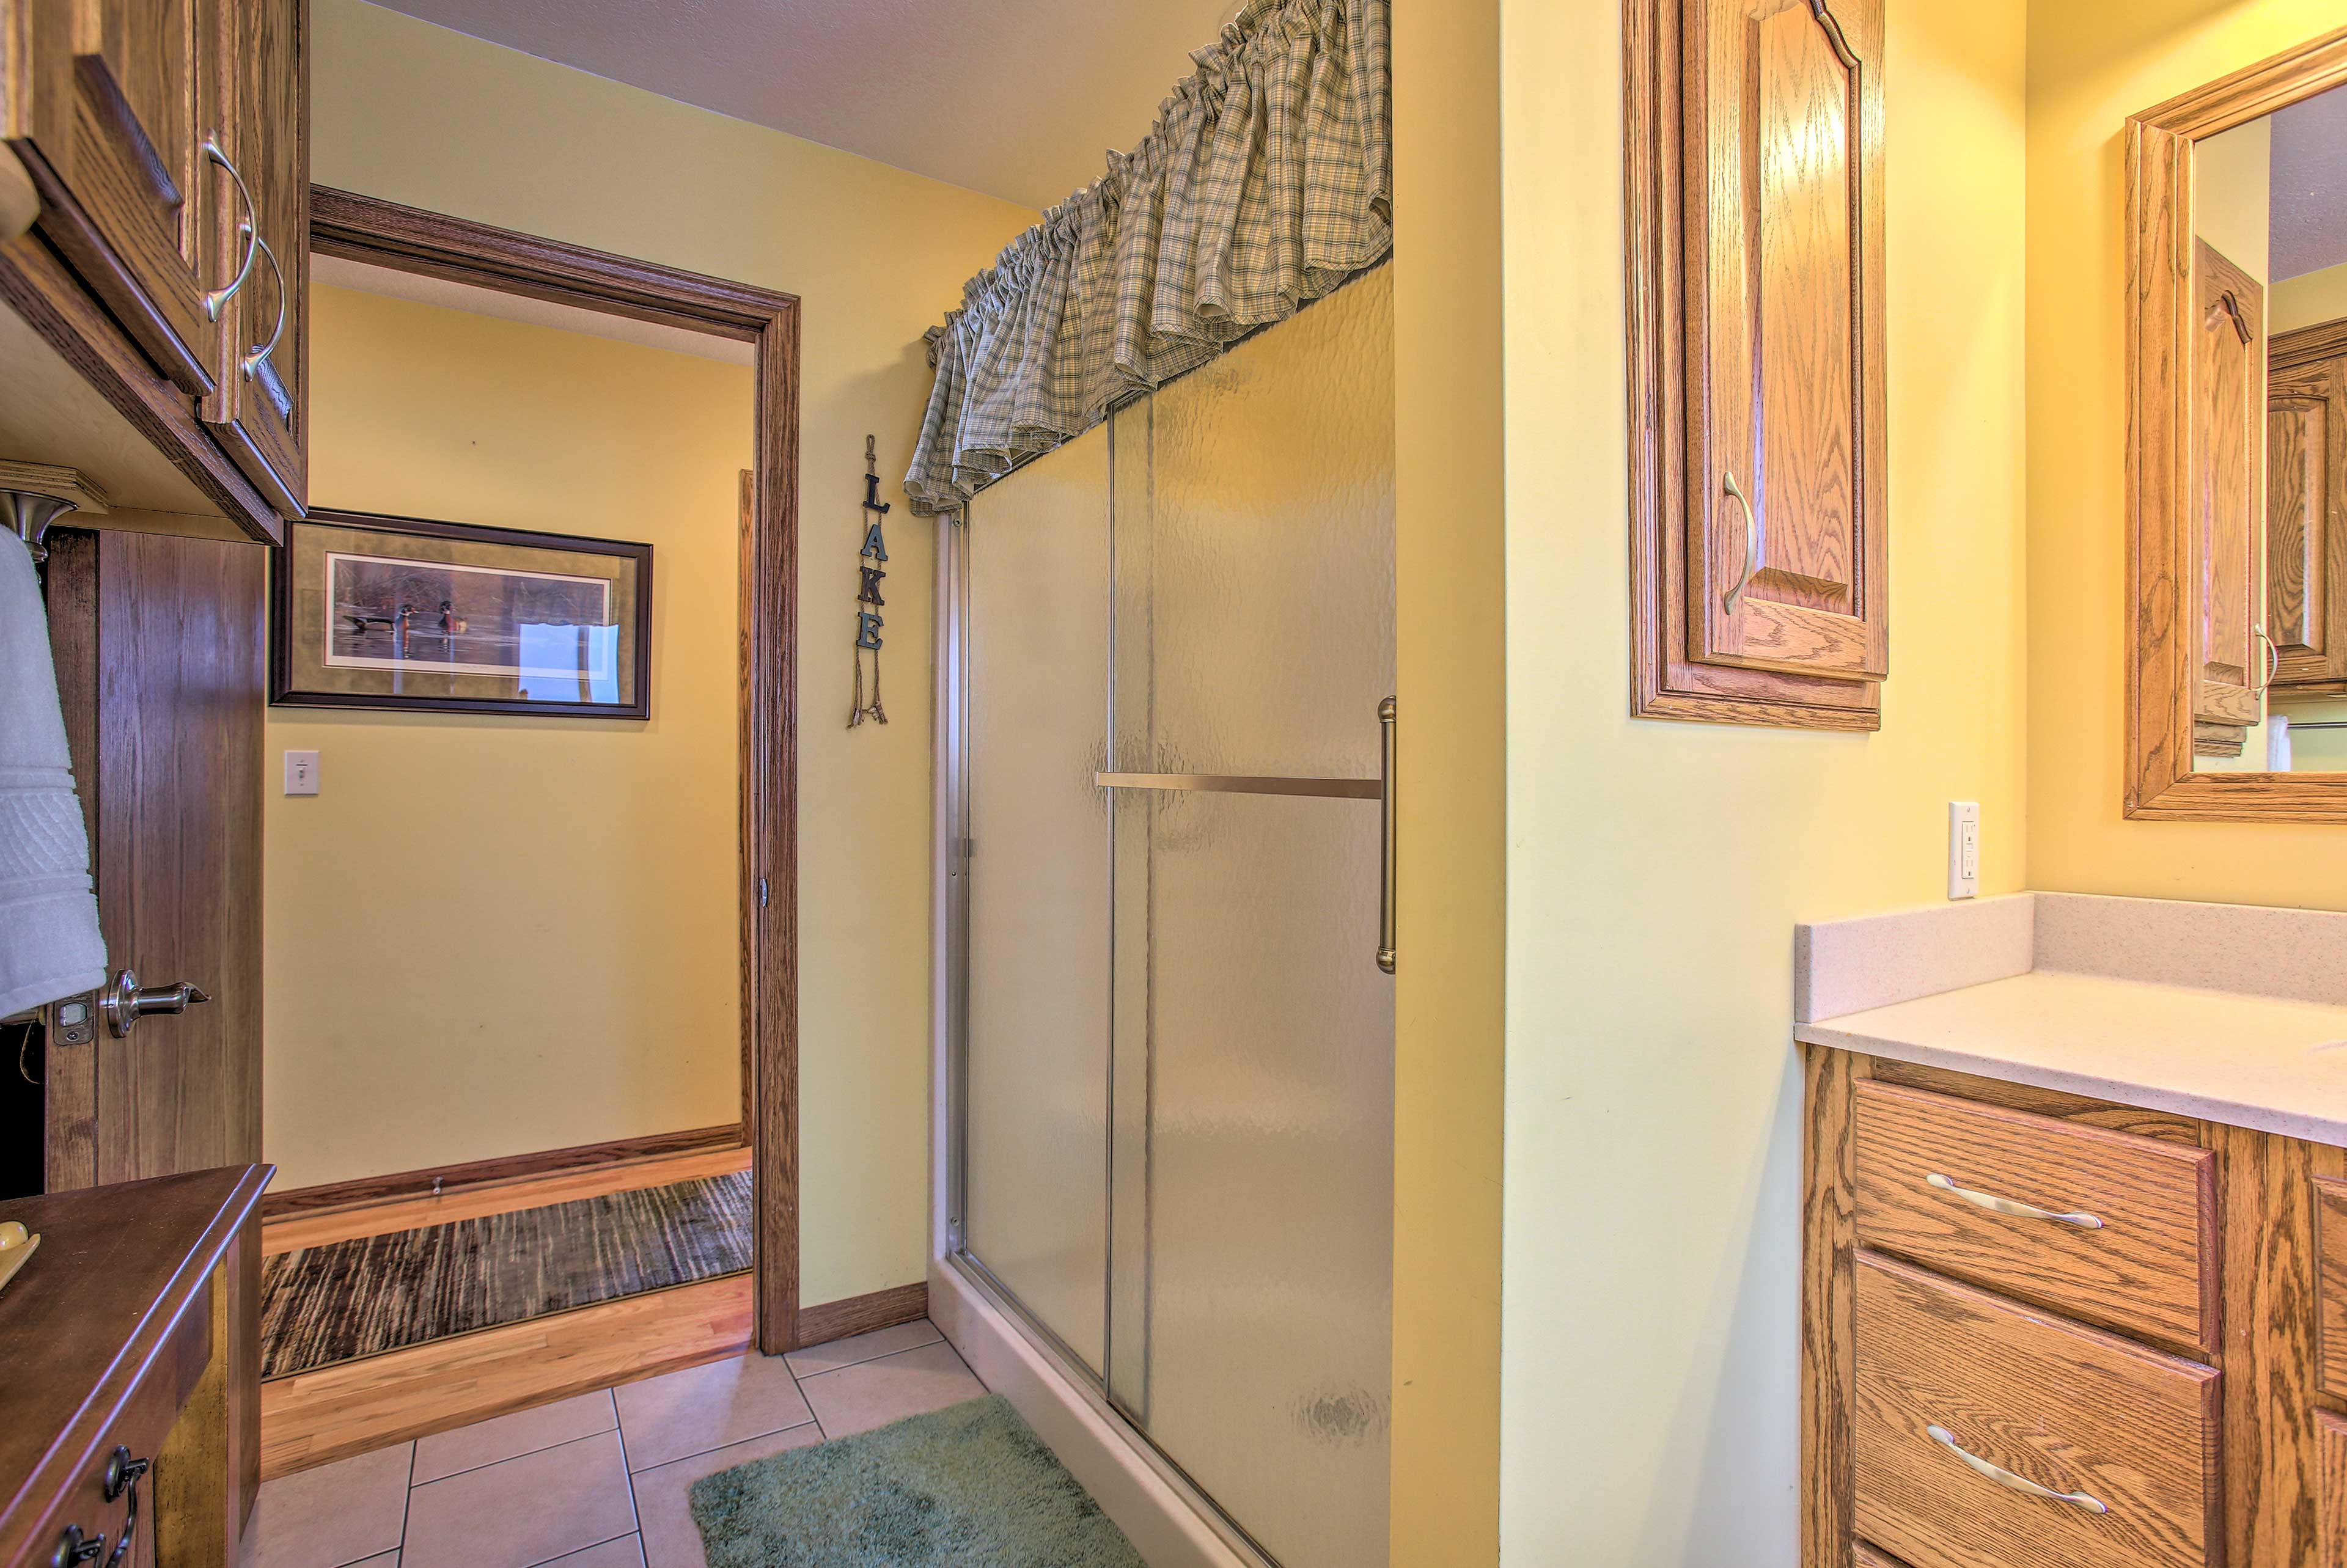 This bathroom is easily accessible being on the first floor.